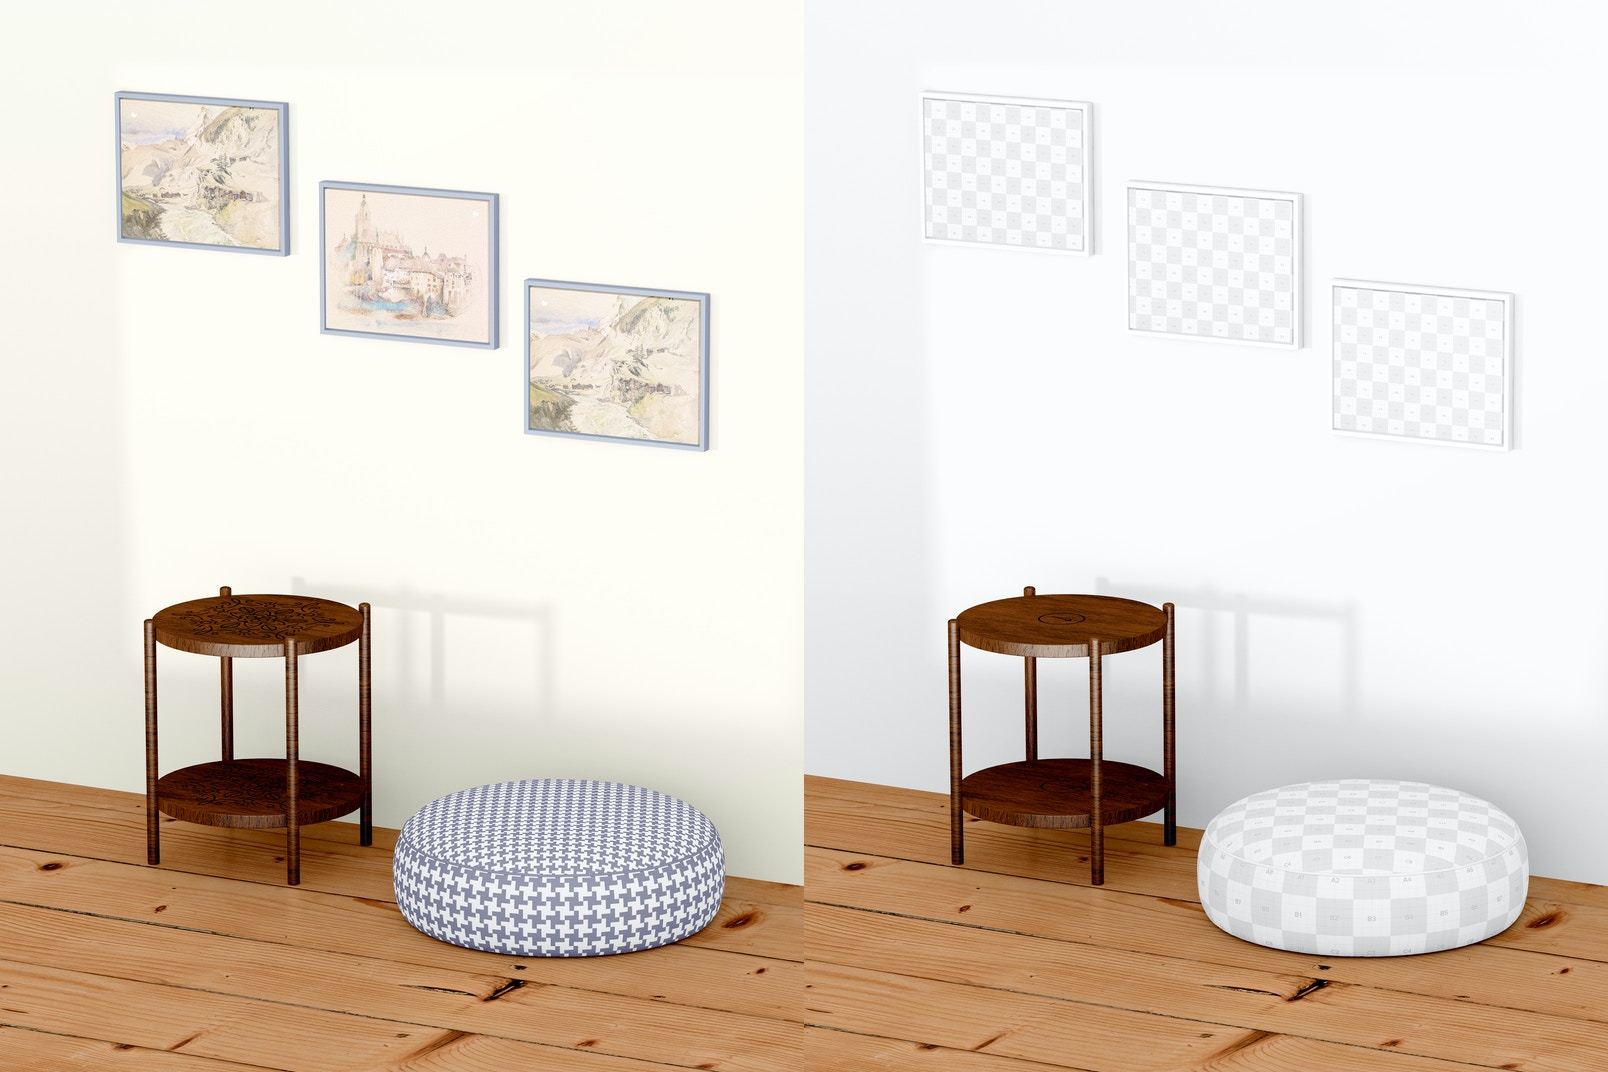 9:7 Landscape Canvas with Large Pouf Mockup, Right View